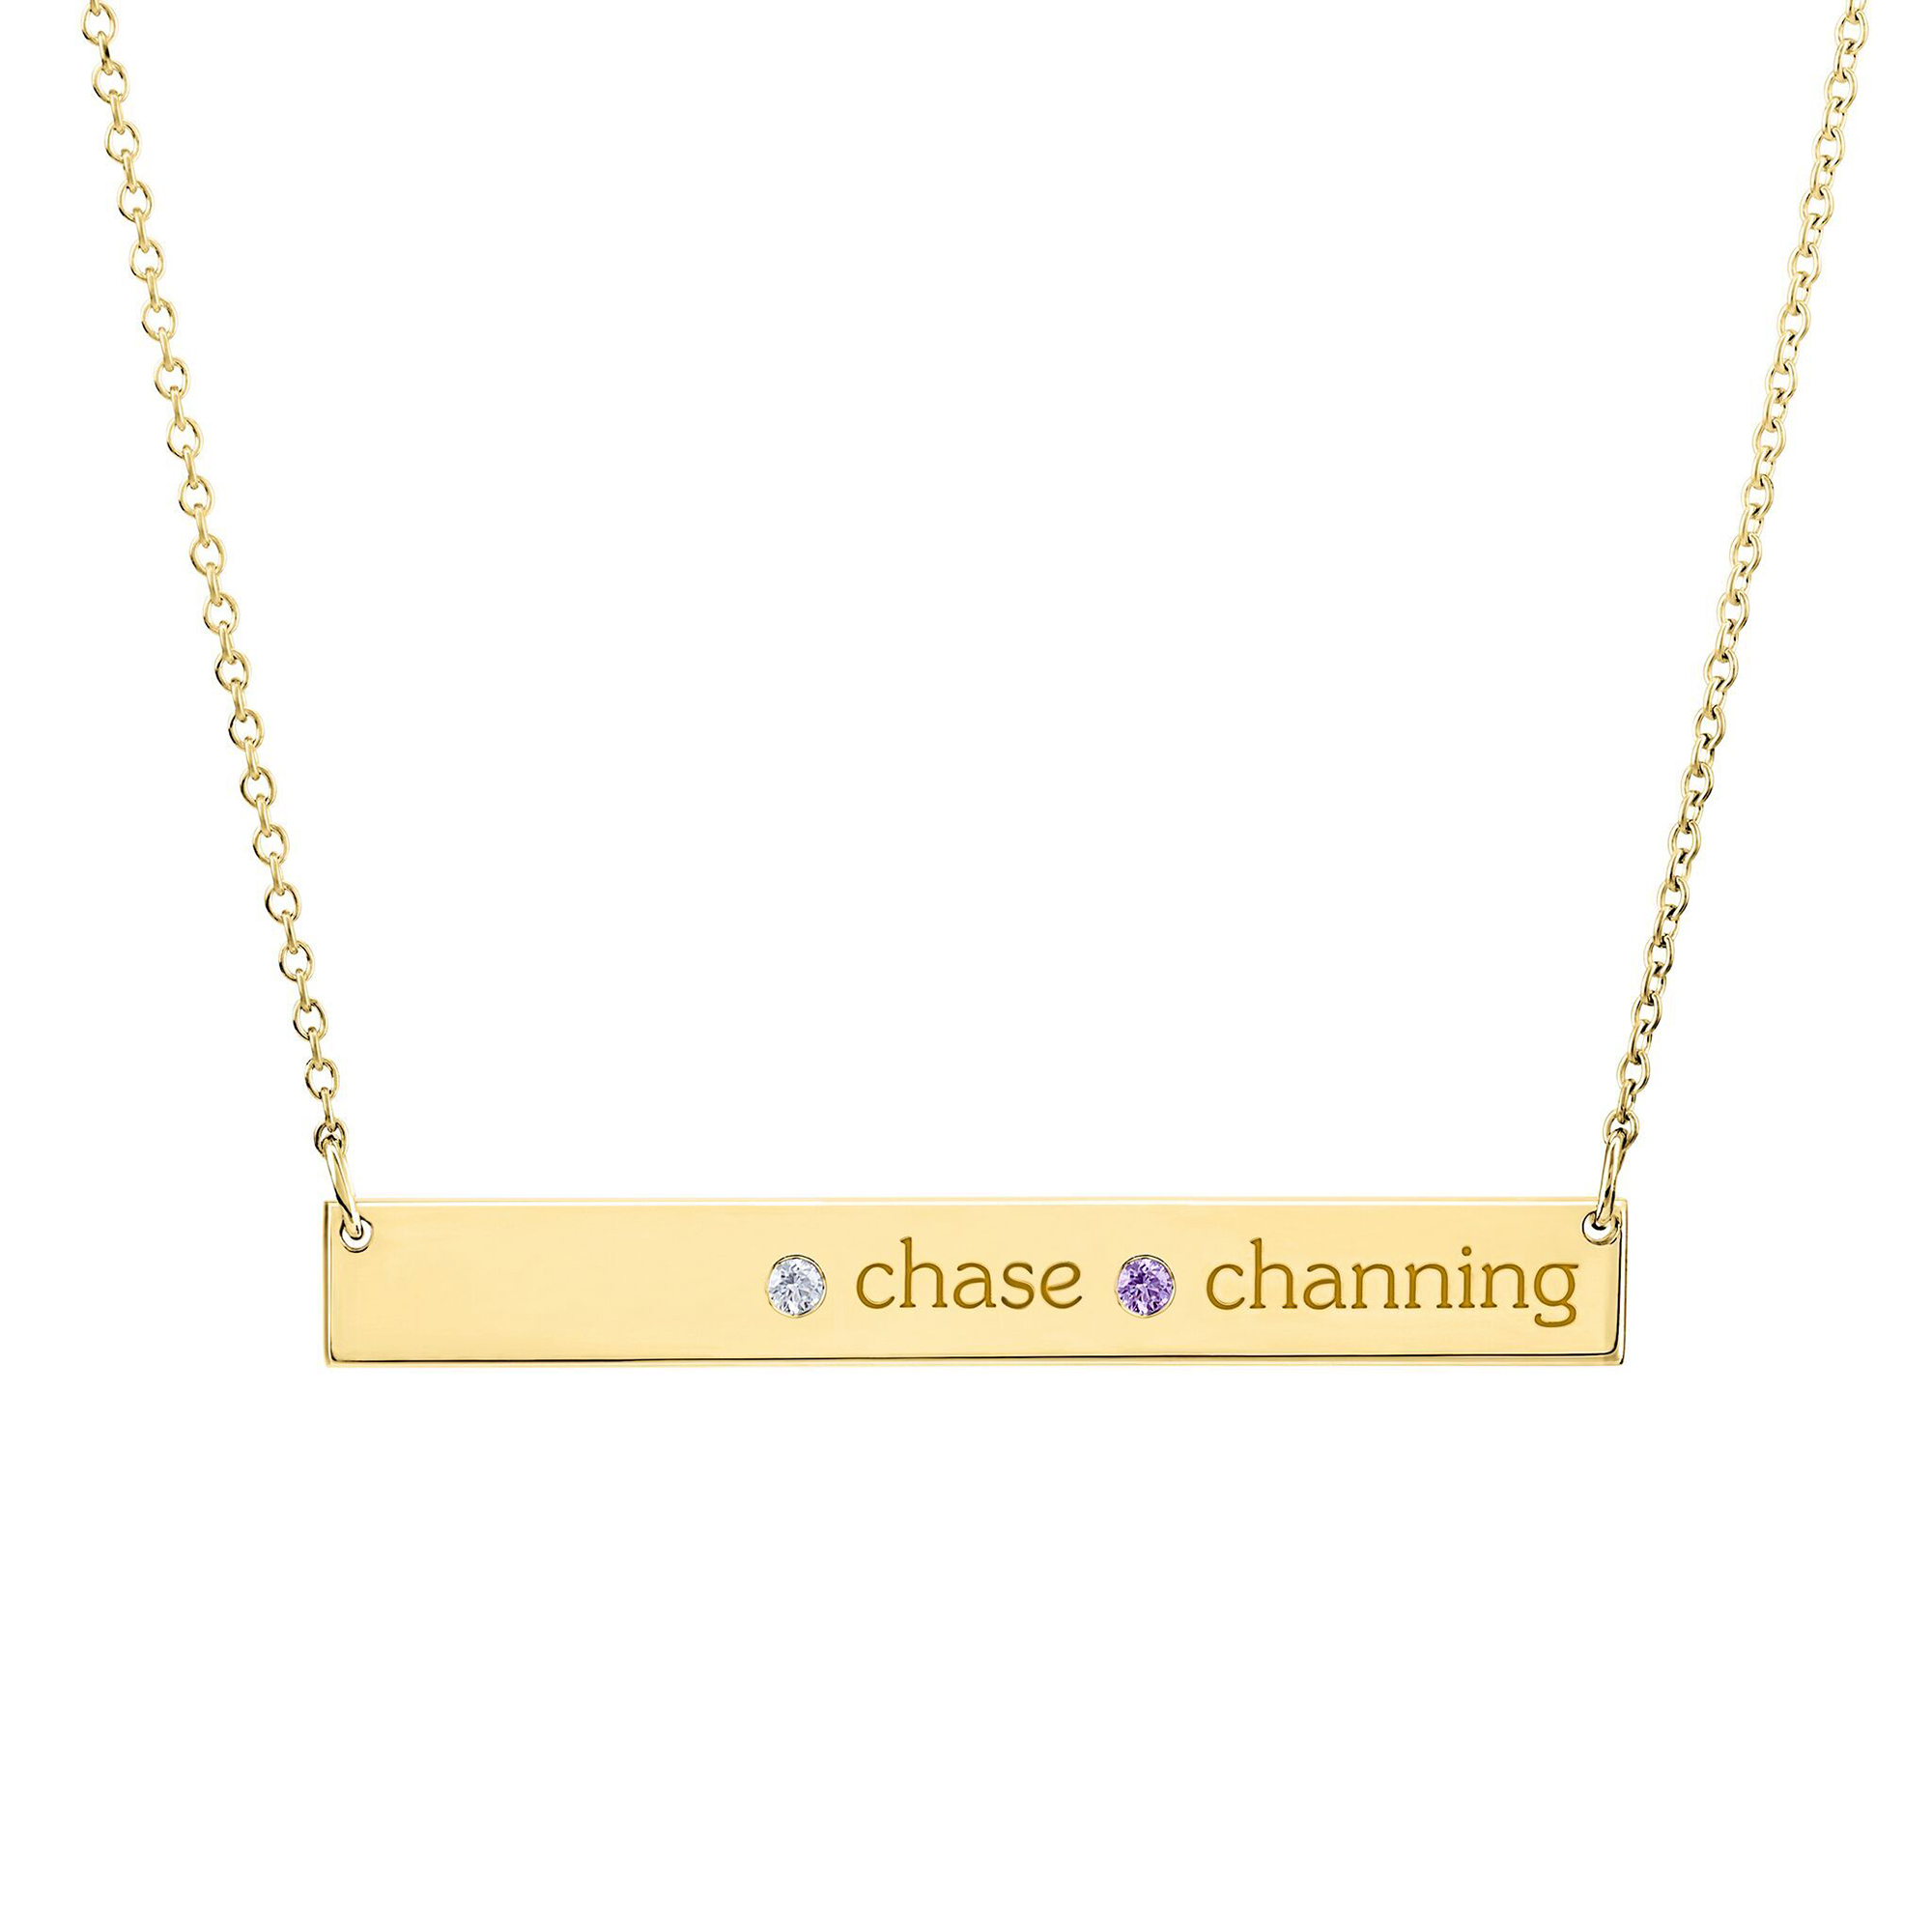 Tiny-Tags-Gold-Skinny-Bar-Necklace - Help a mother figure keep her loved ones close to her heart with a gorgeous engraved necklace. $135, tinytags.com